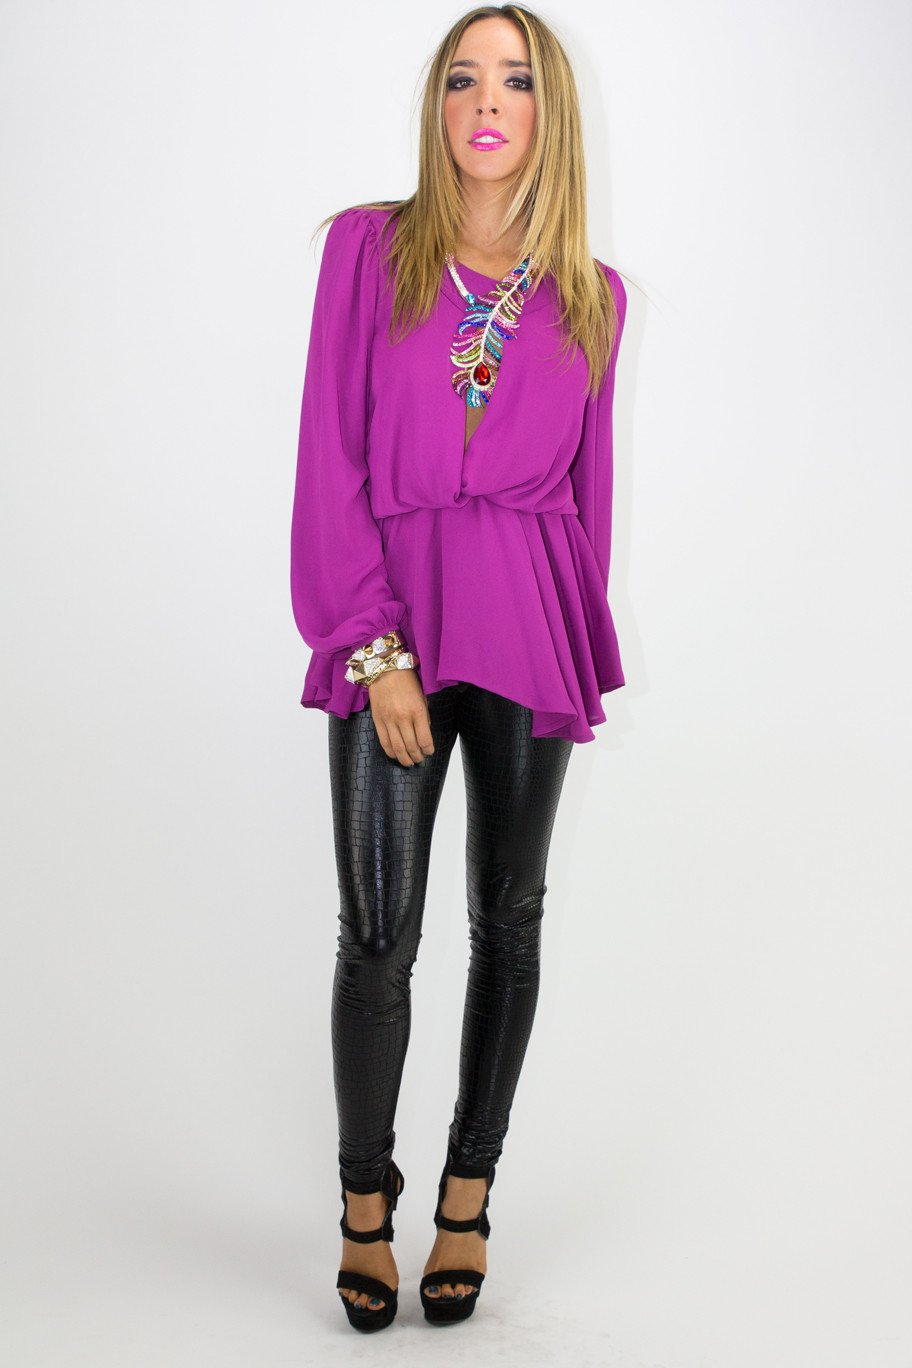 ALANA LONG SLEEVE BLOUSE - Fuchsia - Haute & Rebellious